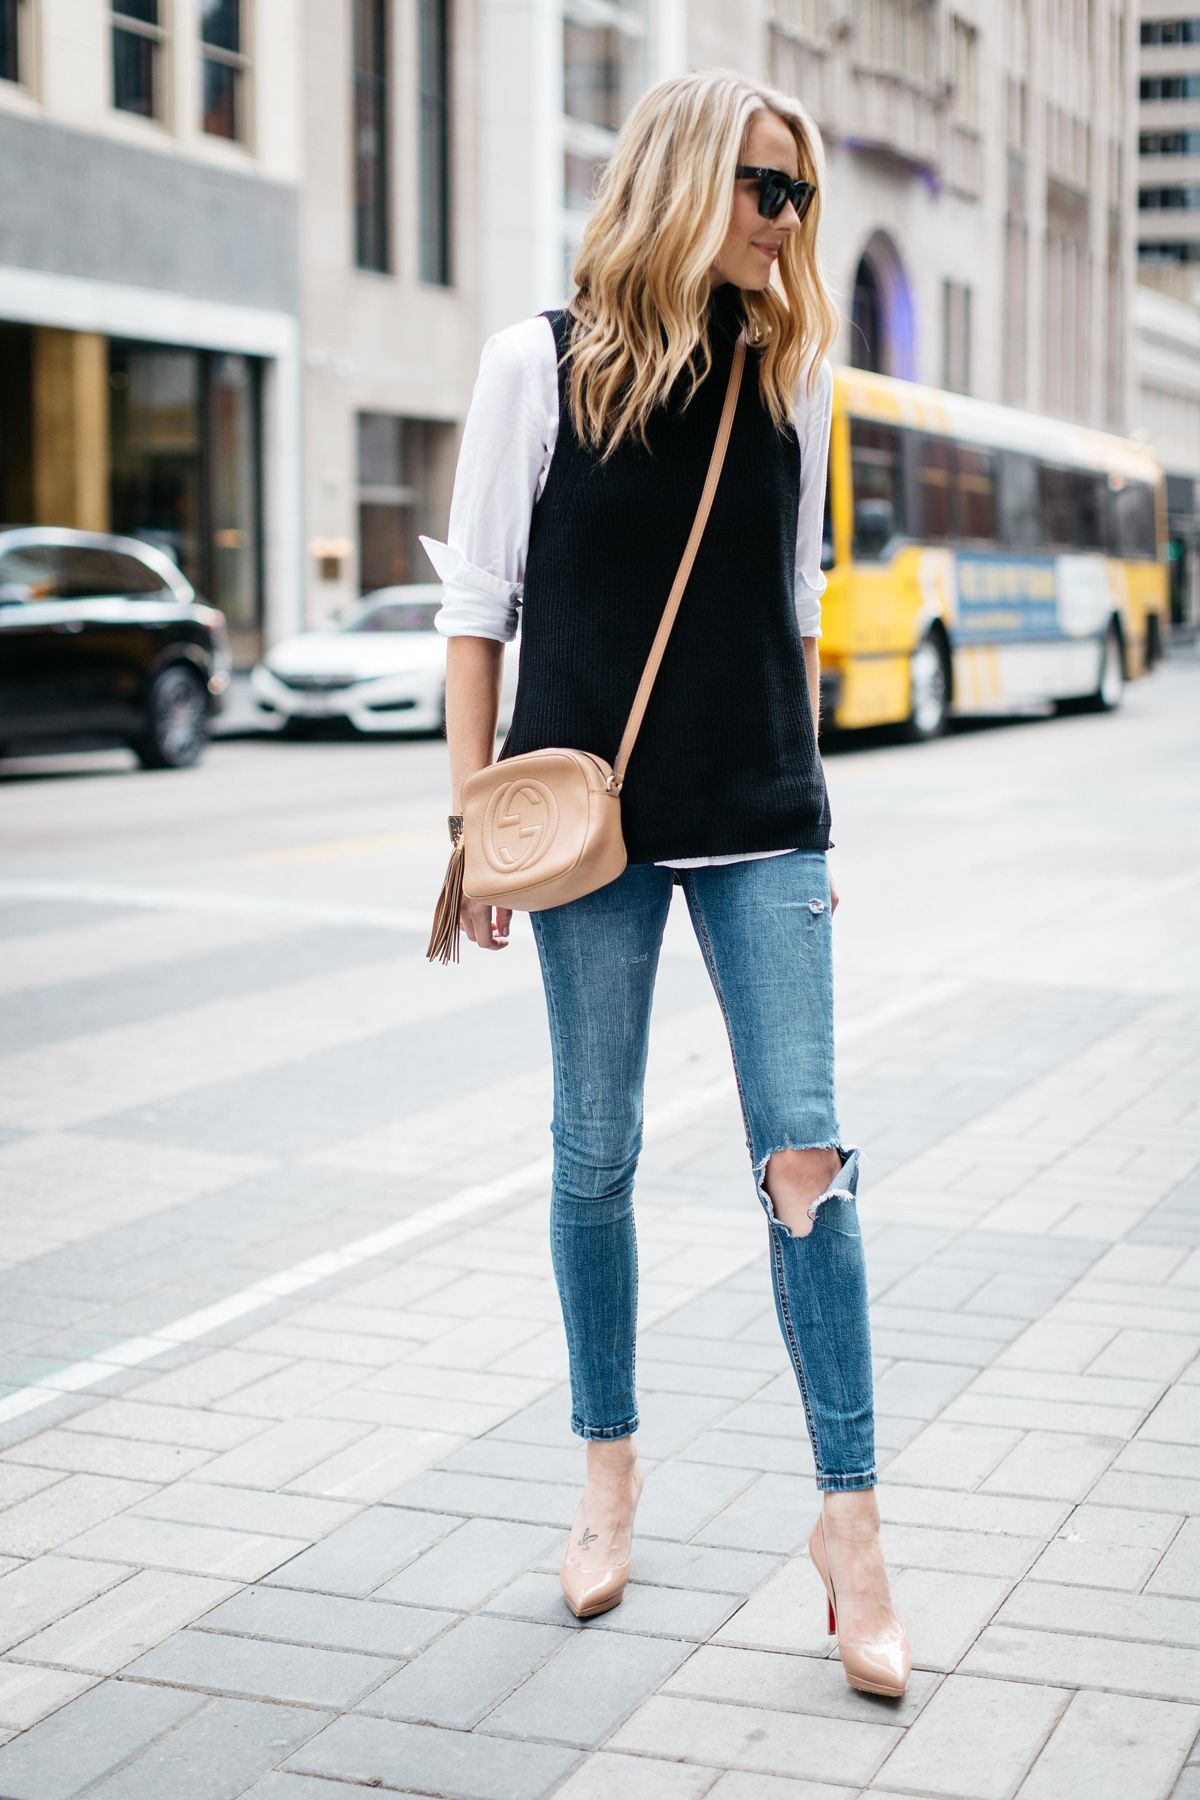 Fall Outfit, Winter Outfit, White Button Down Shirt, Black Sleeveless  Turtleneck Sweater, Denim Ripped Skinny Jeans, Gucci Soho Handbag, Nude  Pumps 4b09071602